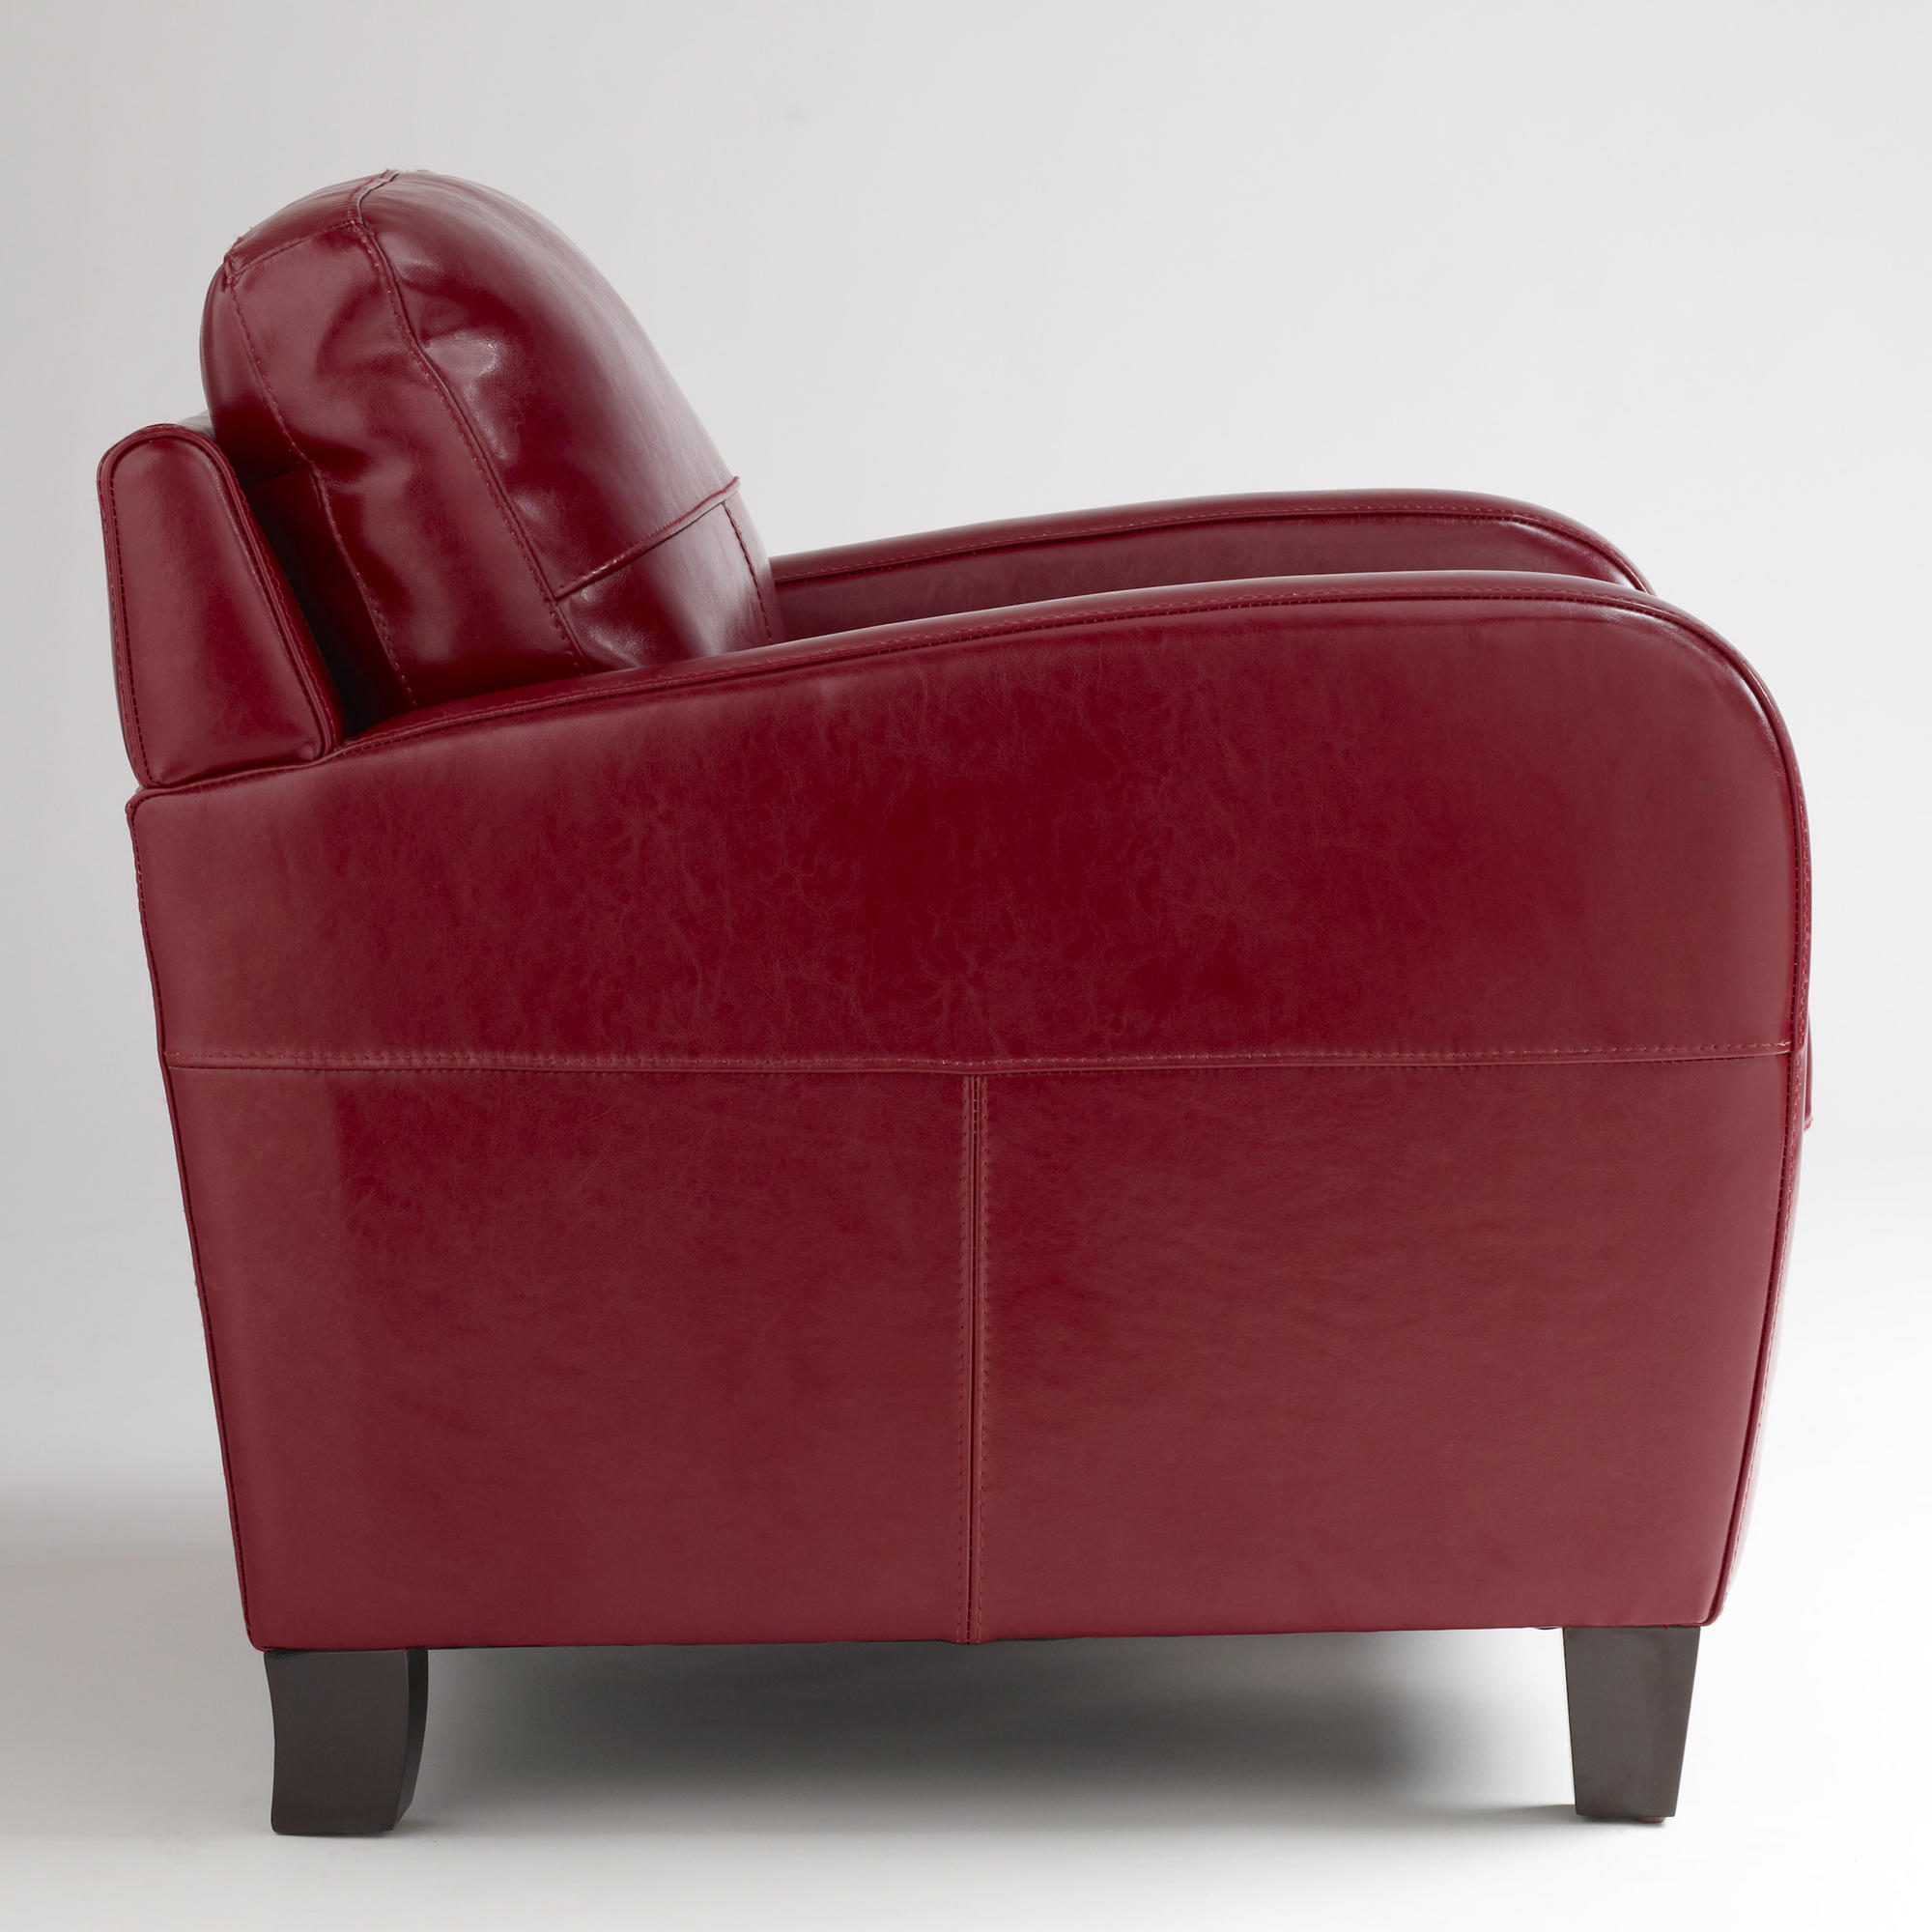 red leather sofas and chairs faux sofa bed canada chair obsession redbird